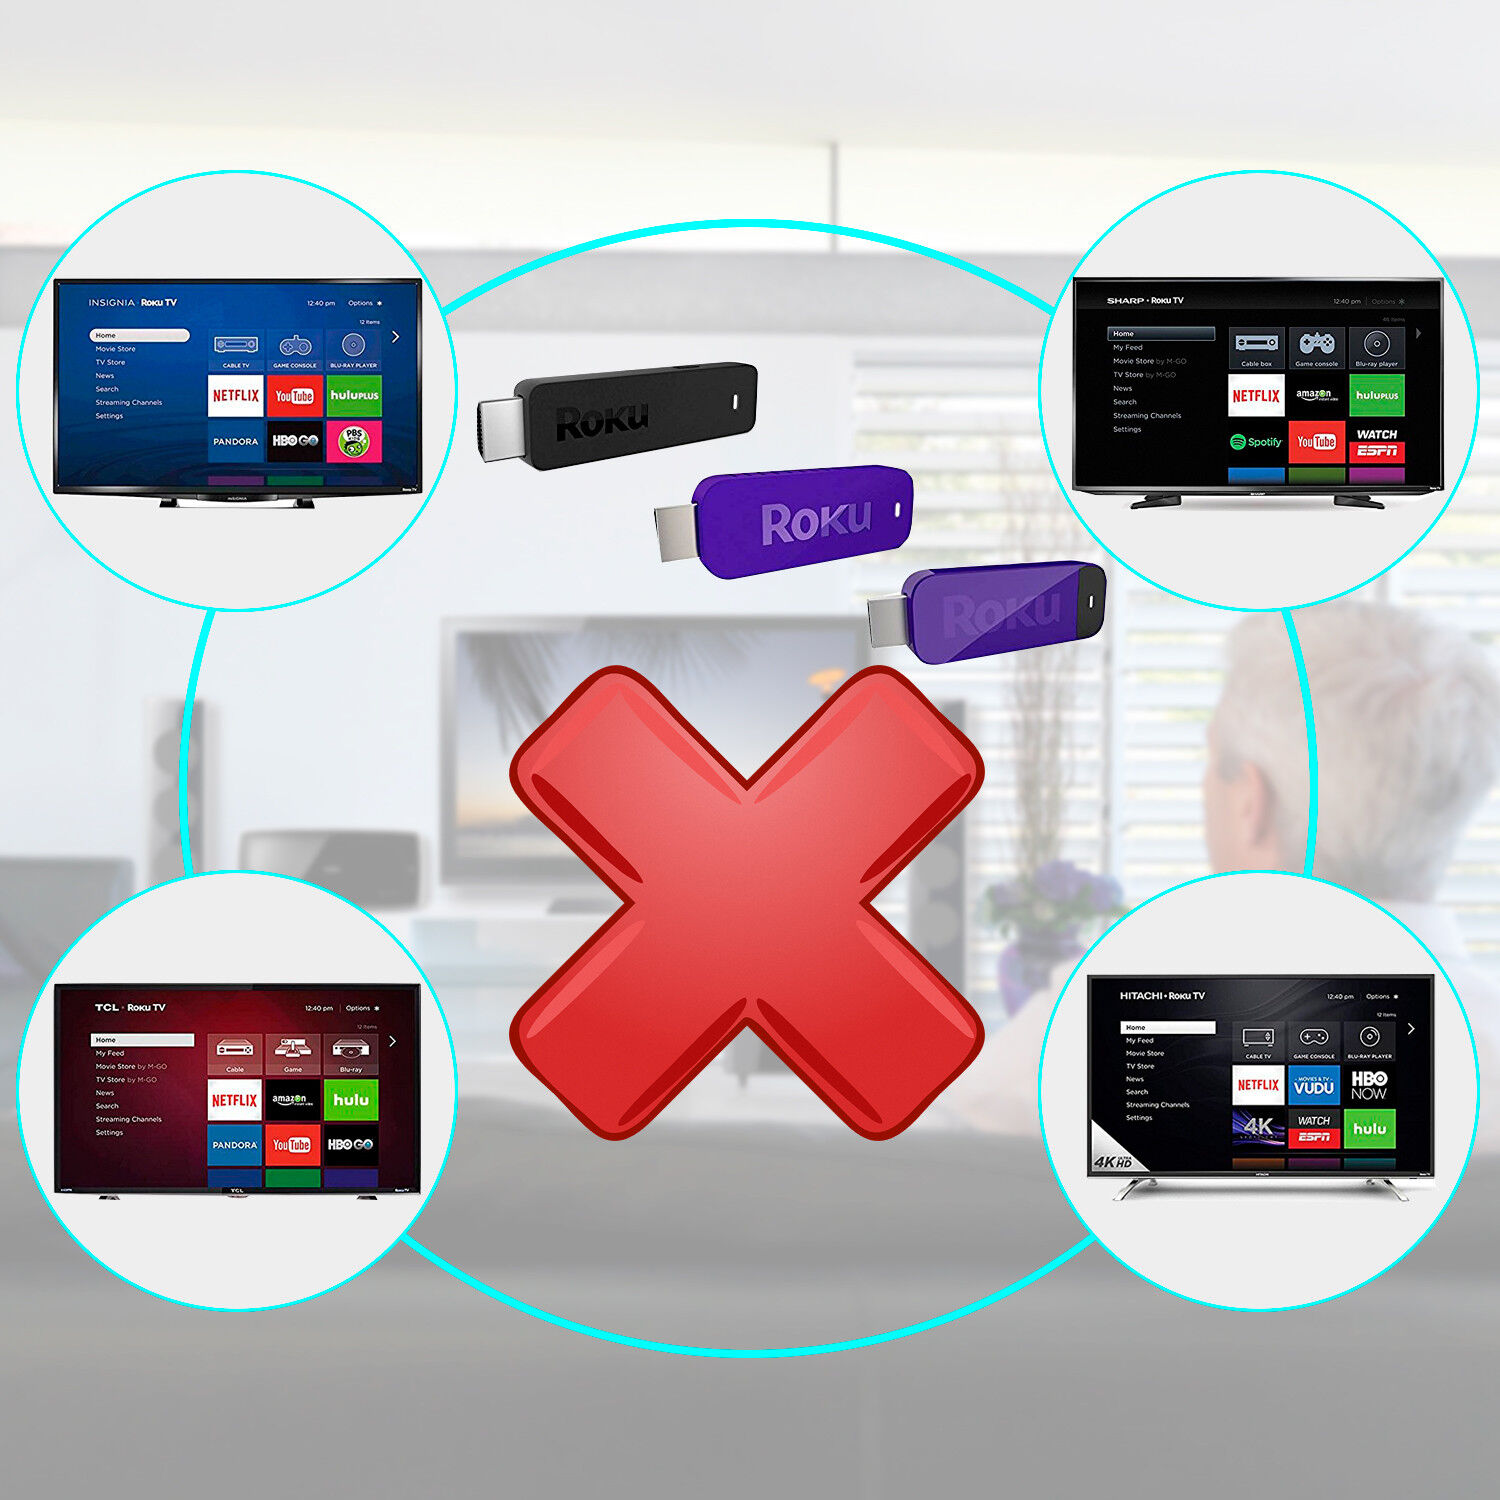 Купить Unbranded/Generic - Replaced Remote Control for ROKU 1 2 3 4 LT HD XD XS Player with 4 Shortcut Keys